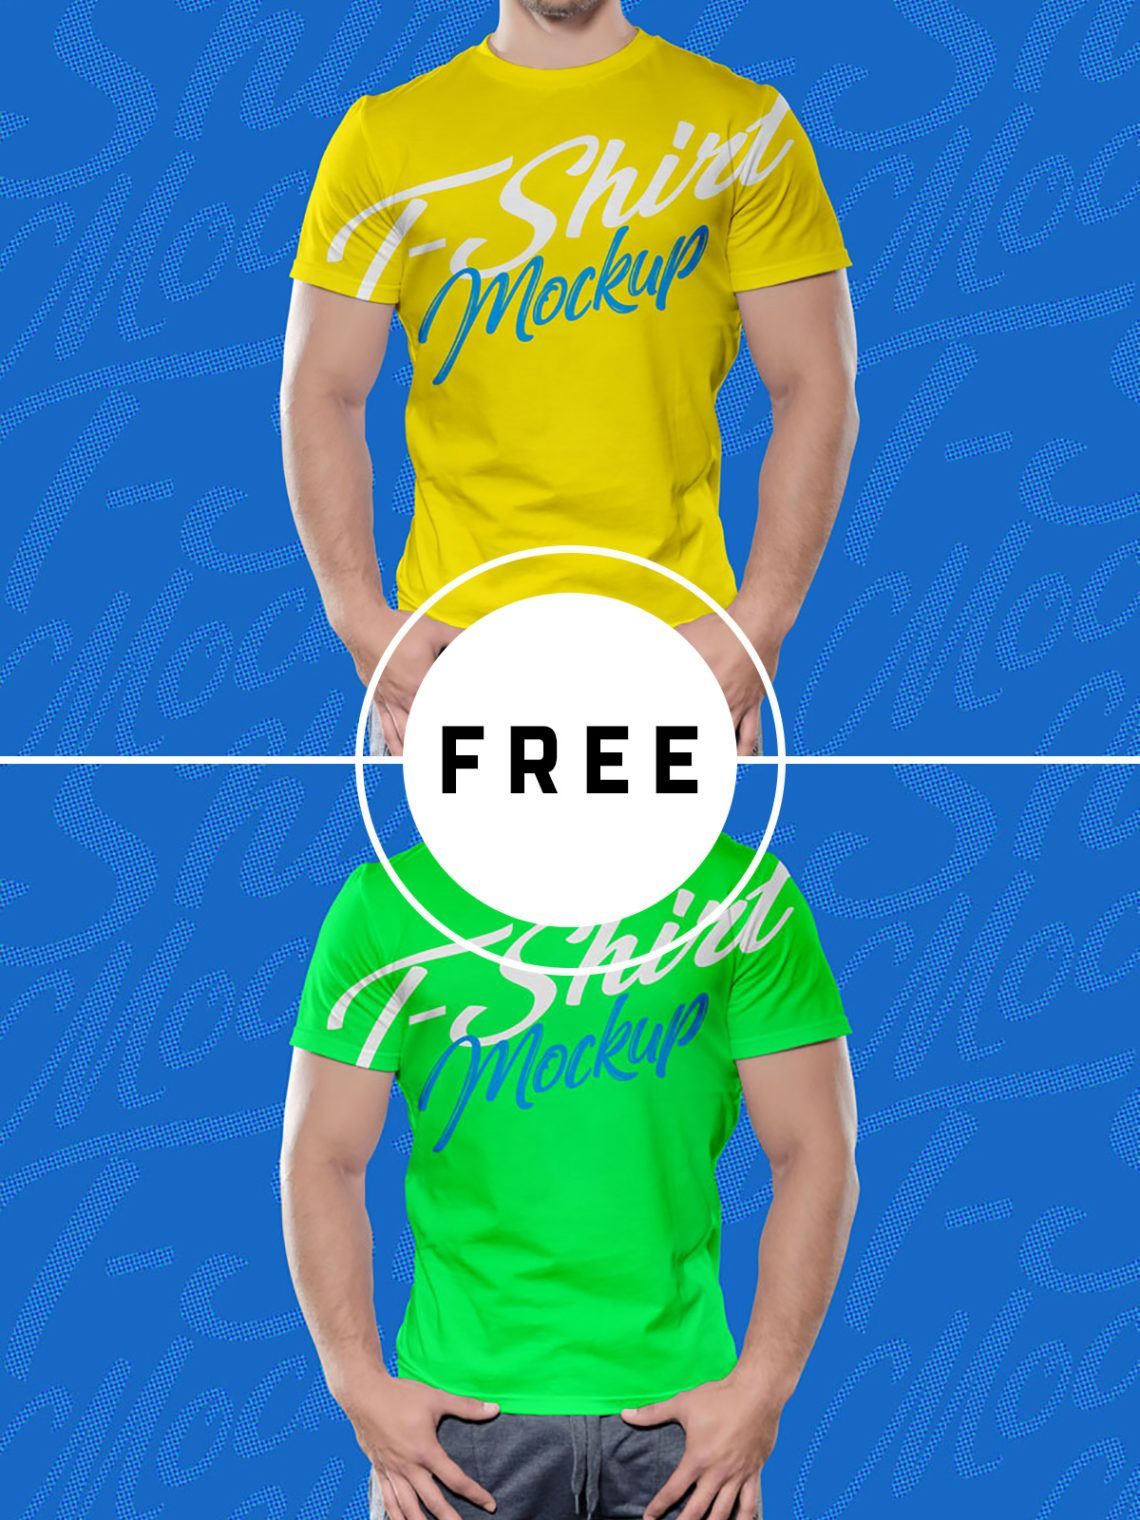 Download 25 Multipurpose Free T Shirt Mockups For Your Breathtaking Designs Learning Graphic Design Shirt Mockup Tshirt Mockup